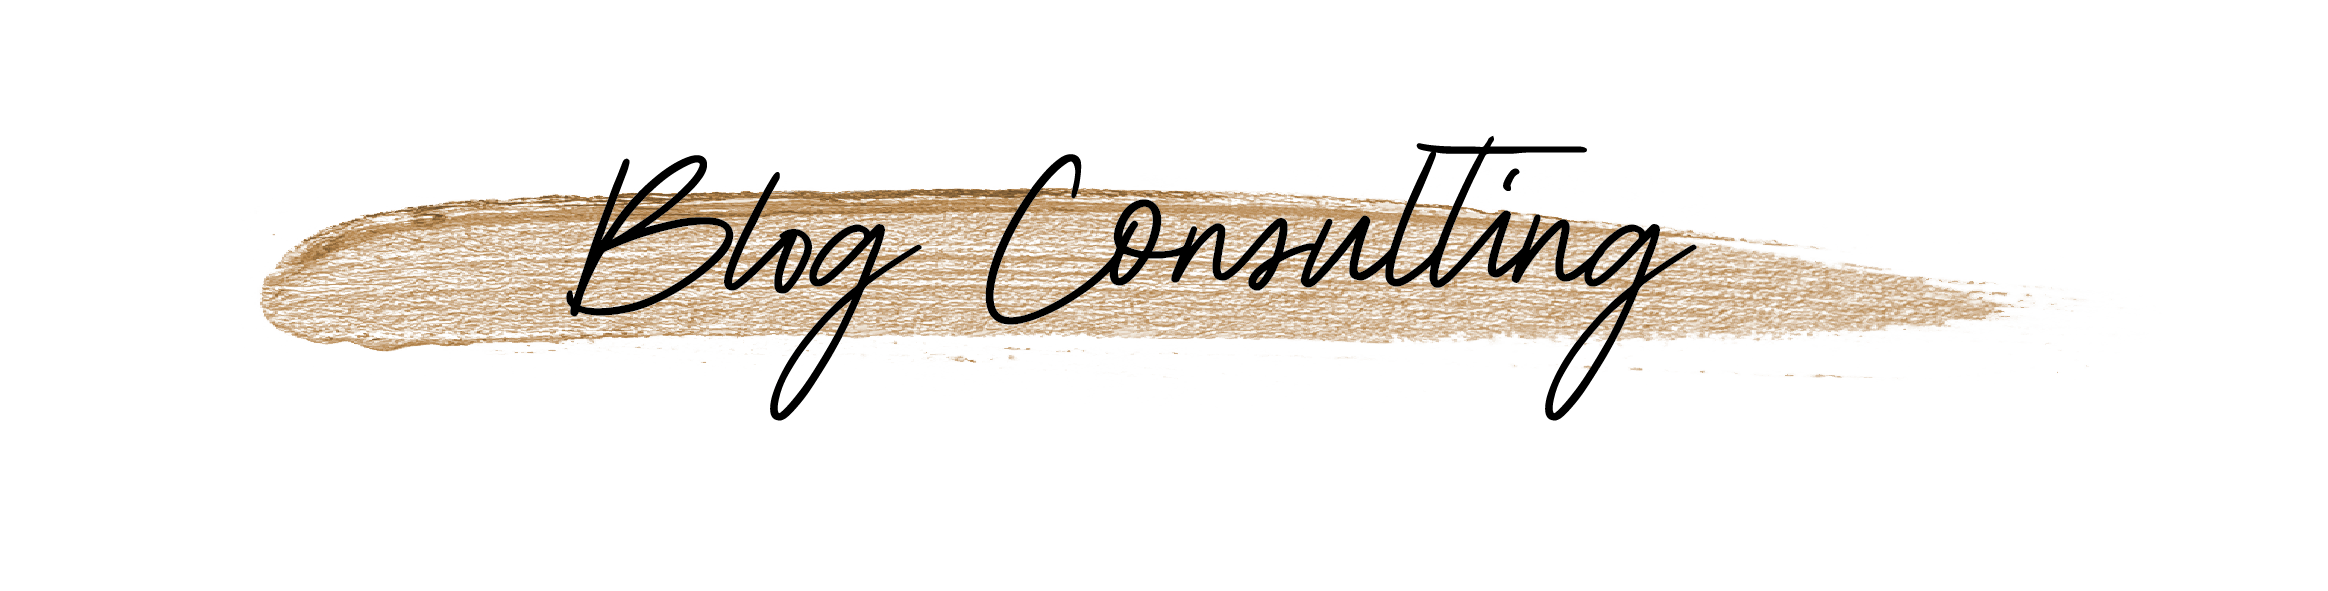 Blog_Consulting-05.png